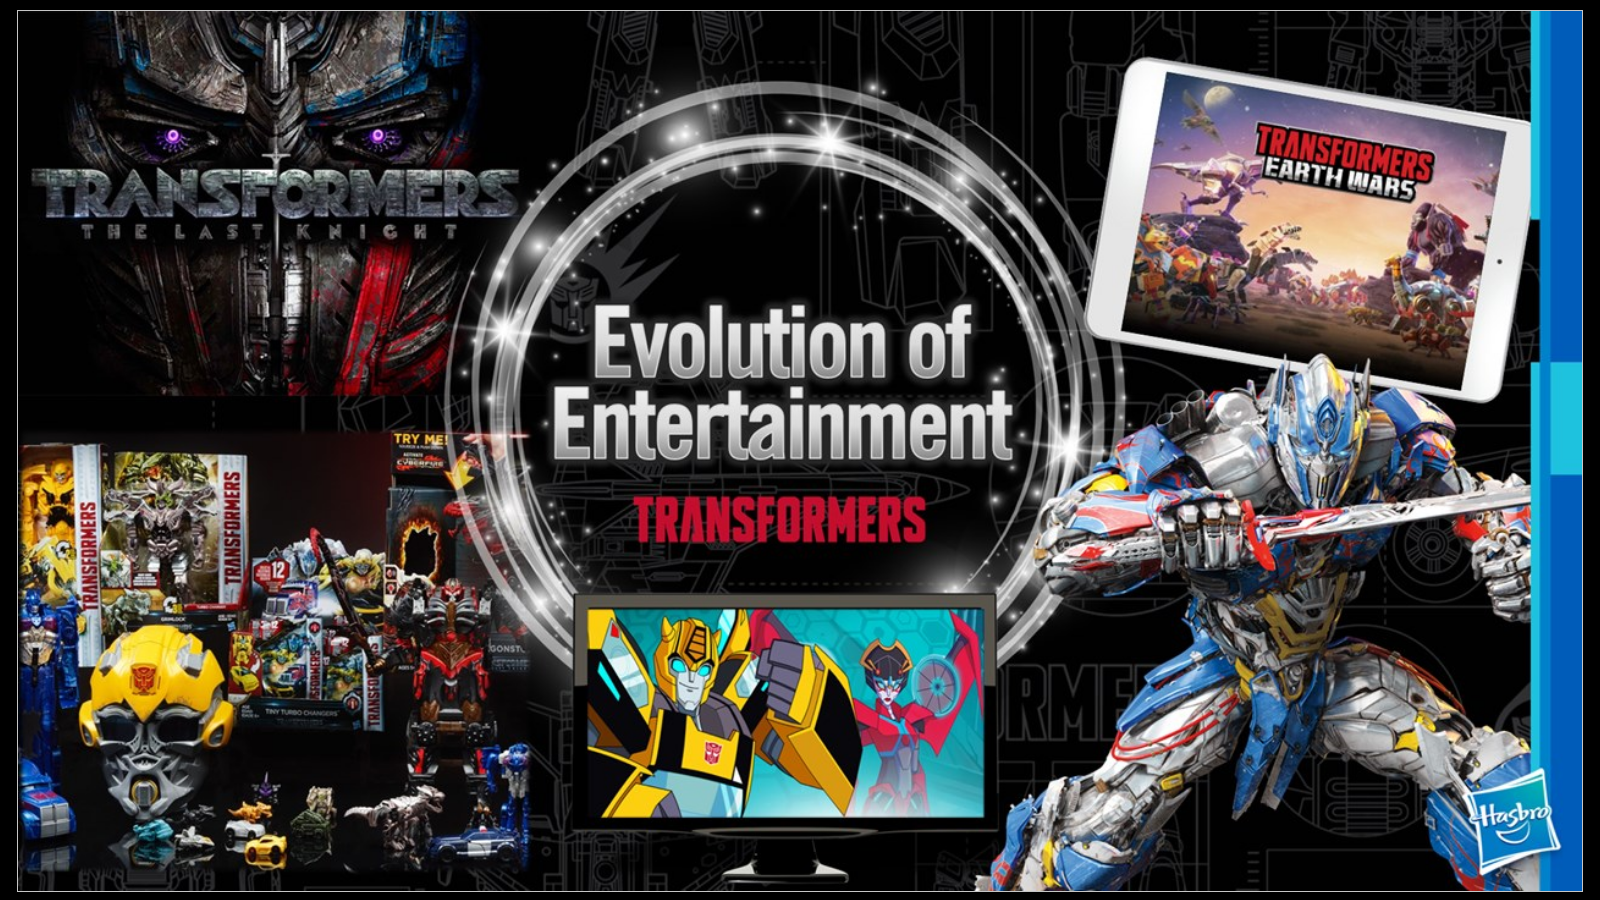 Rumor of the day: Transformers franchise getting rebooted